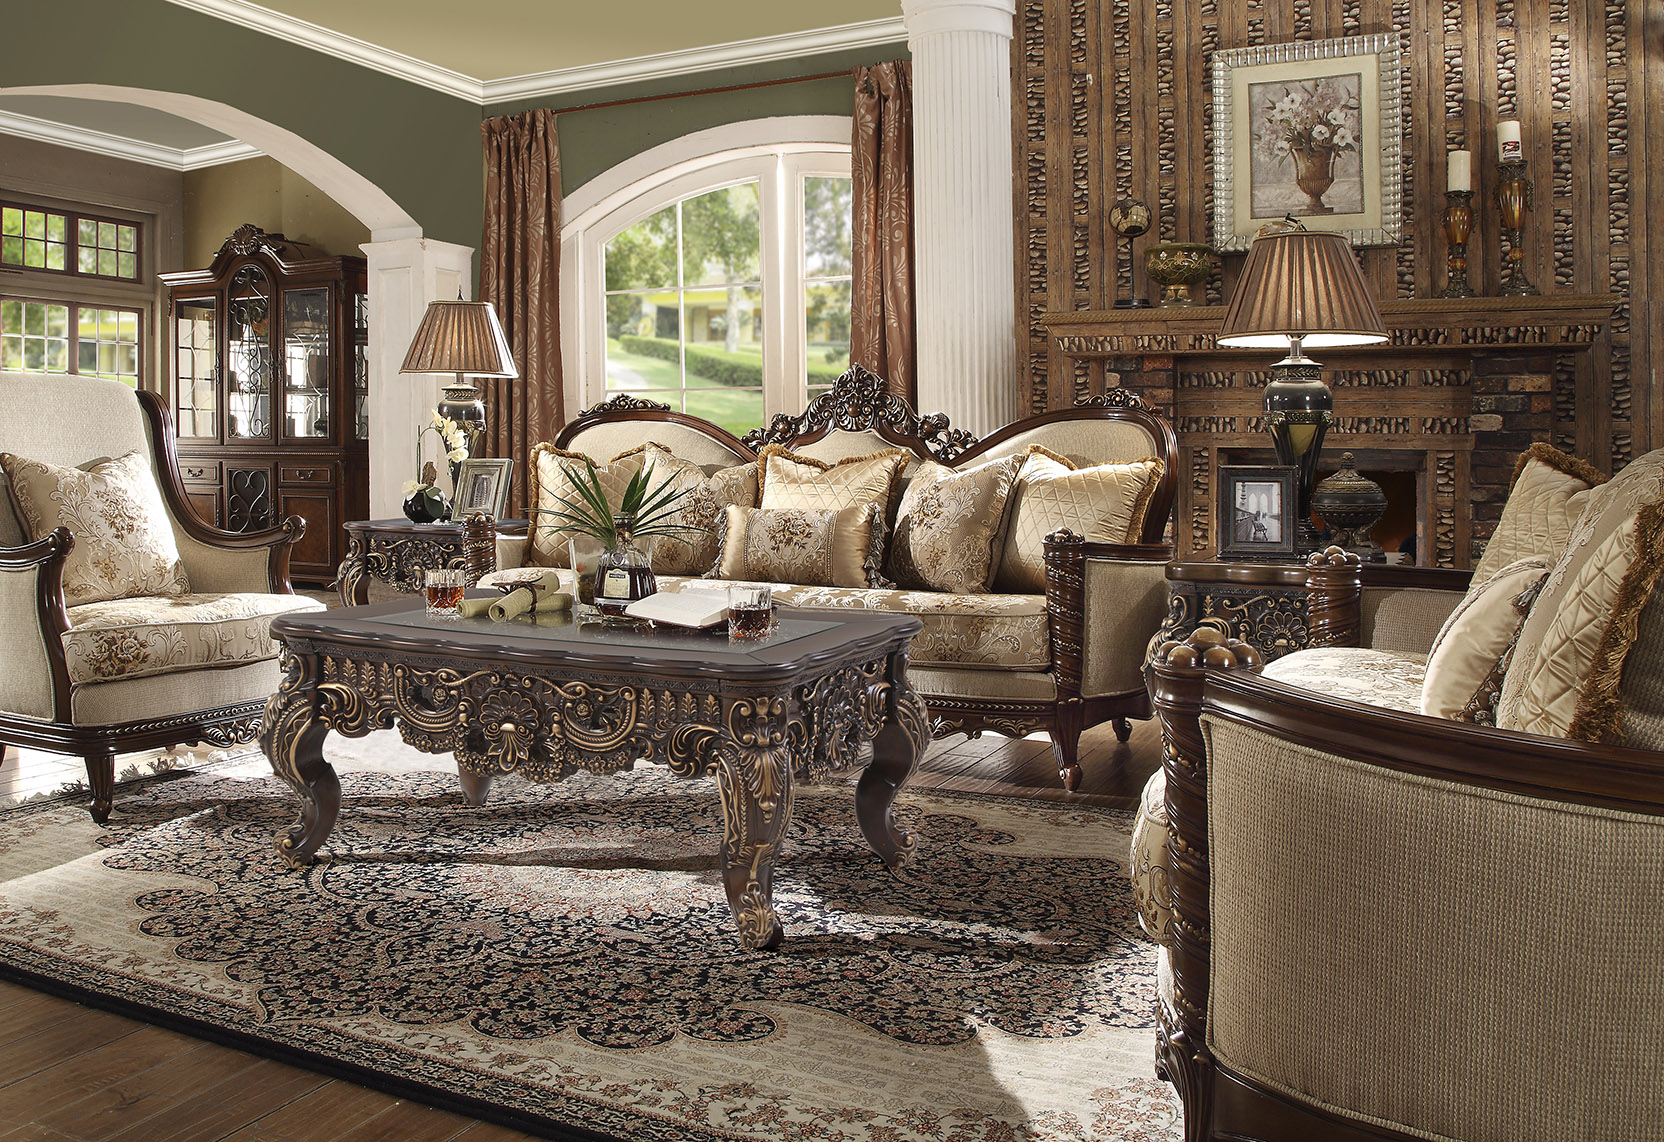 Traditional Living Room Set 3 PCS in Brown Fabric Traditional Style Homey Design HD-92